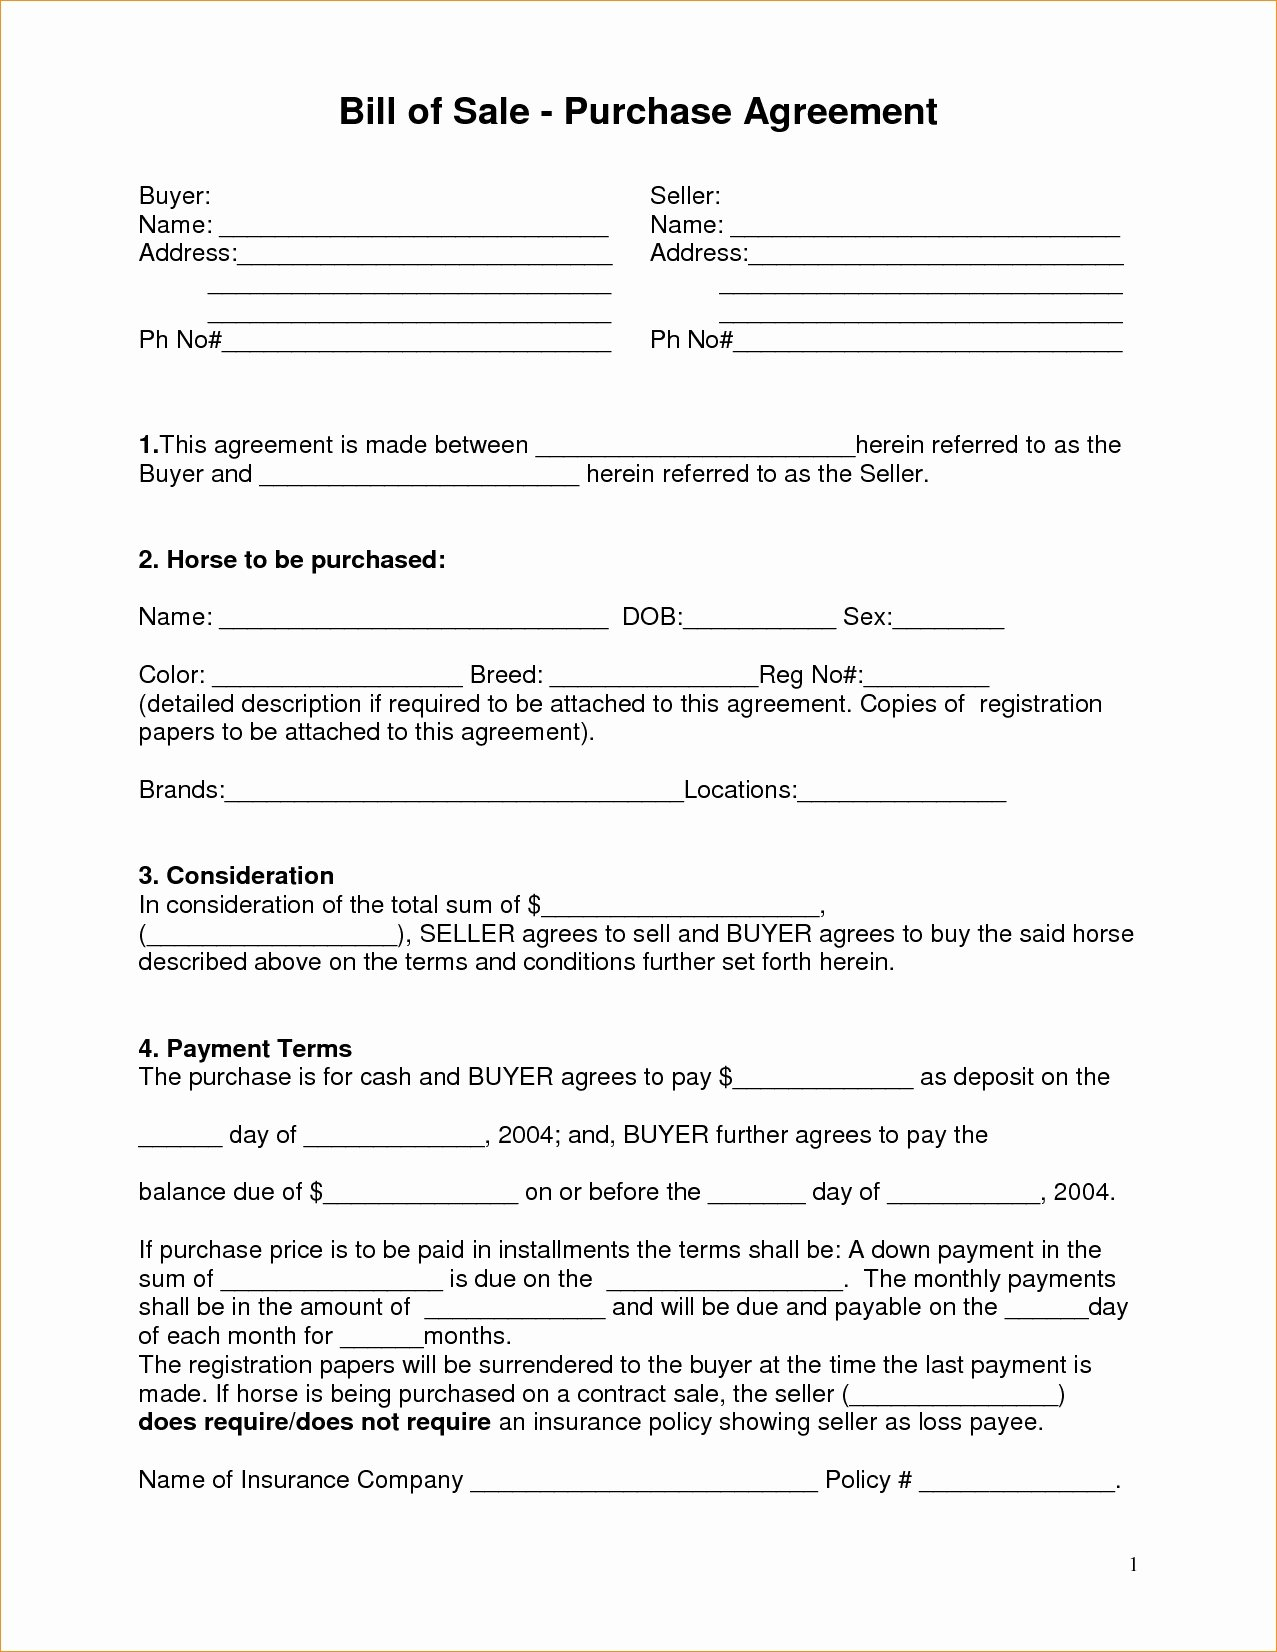 Boat Purchase Agreement Template Fresh Marine Purchase and Sale Agreement Useful Boat Purchase